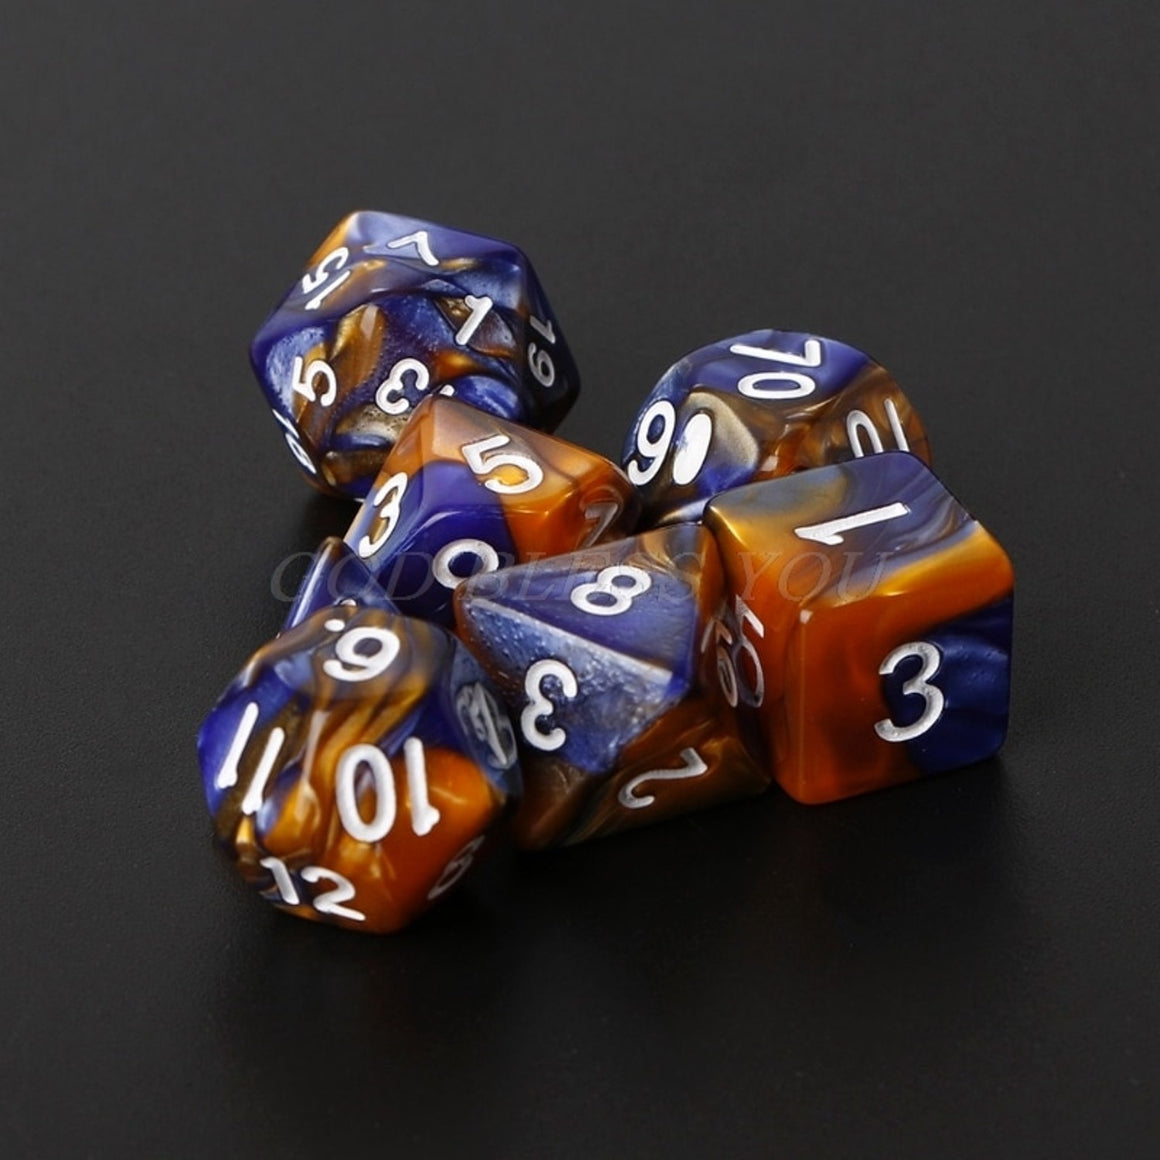 7pcs/Set Acrylic Polyhedral Dice For TRPG Board Game Dungeons And Dragons D4-D20 Drop Ship